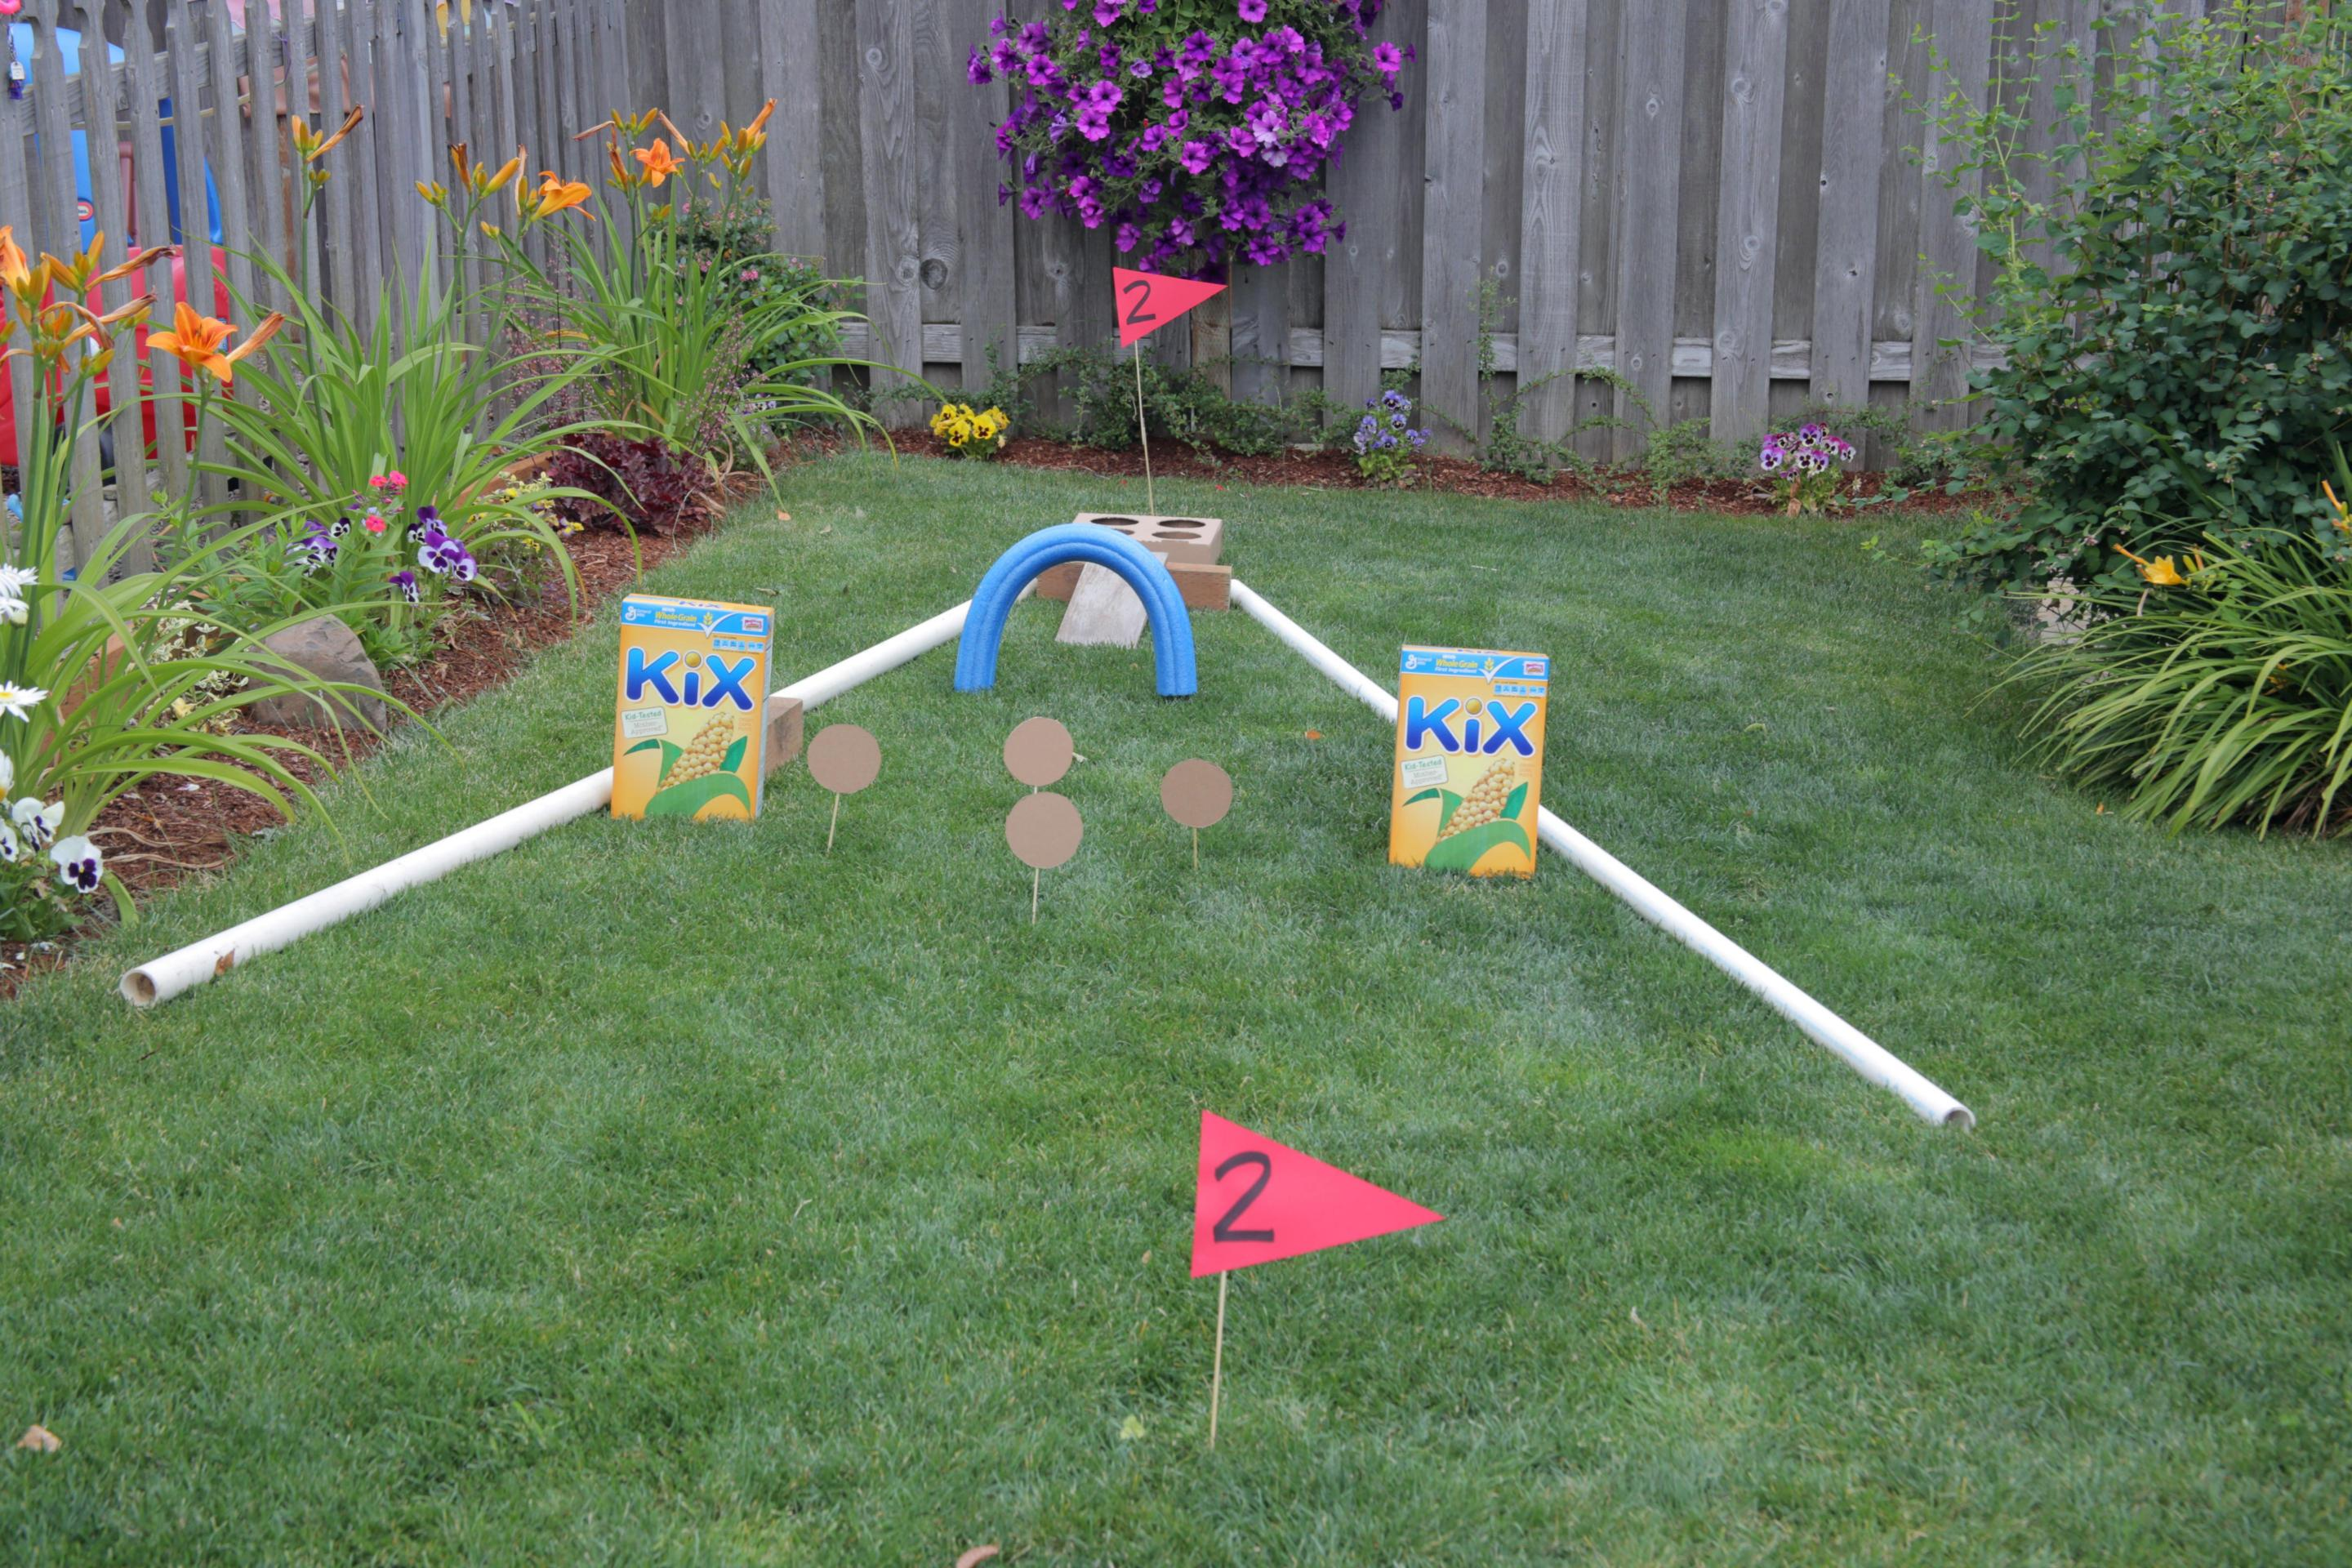 Outdoor Fun Backyard Mini Golf Course · Kix Cereal